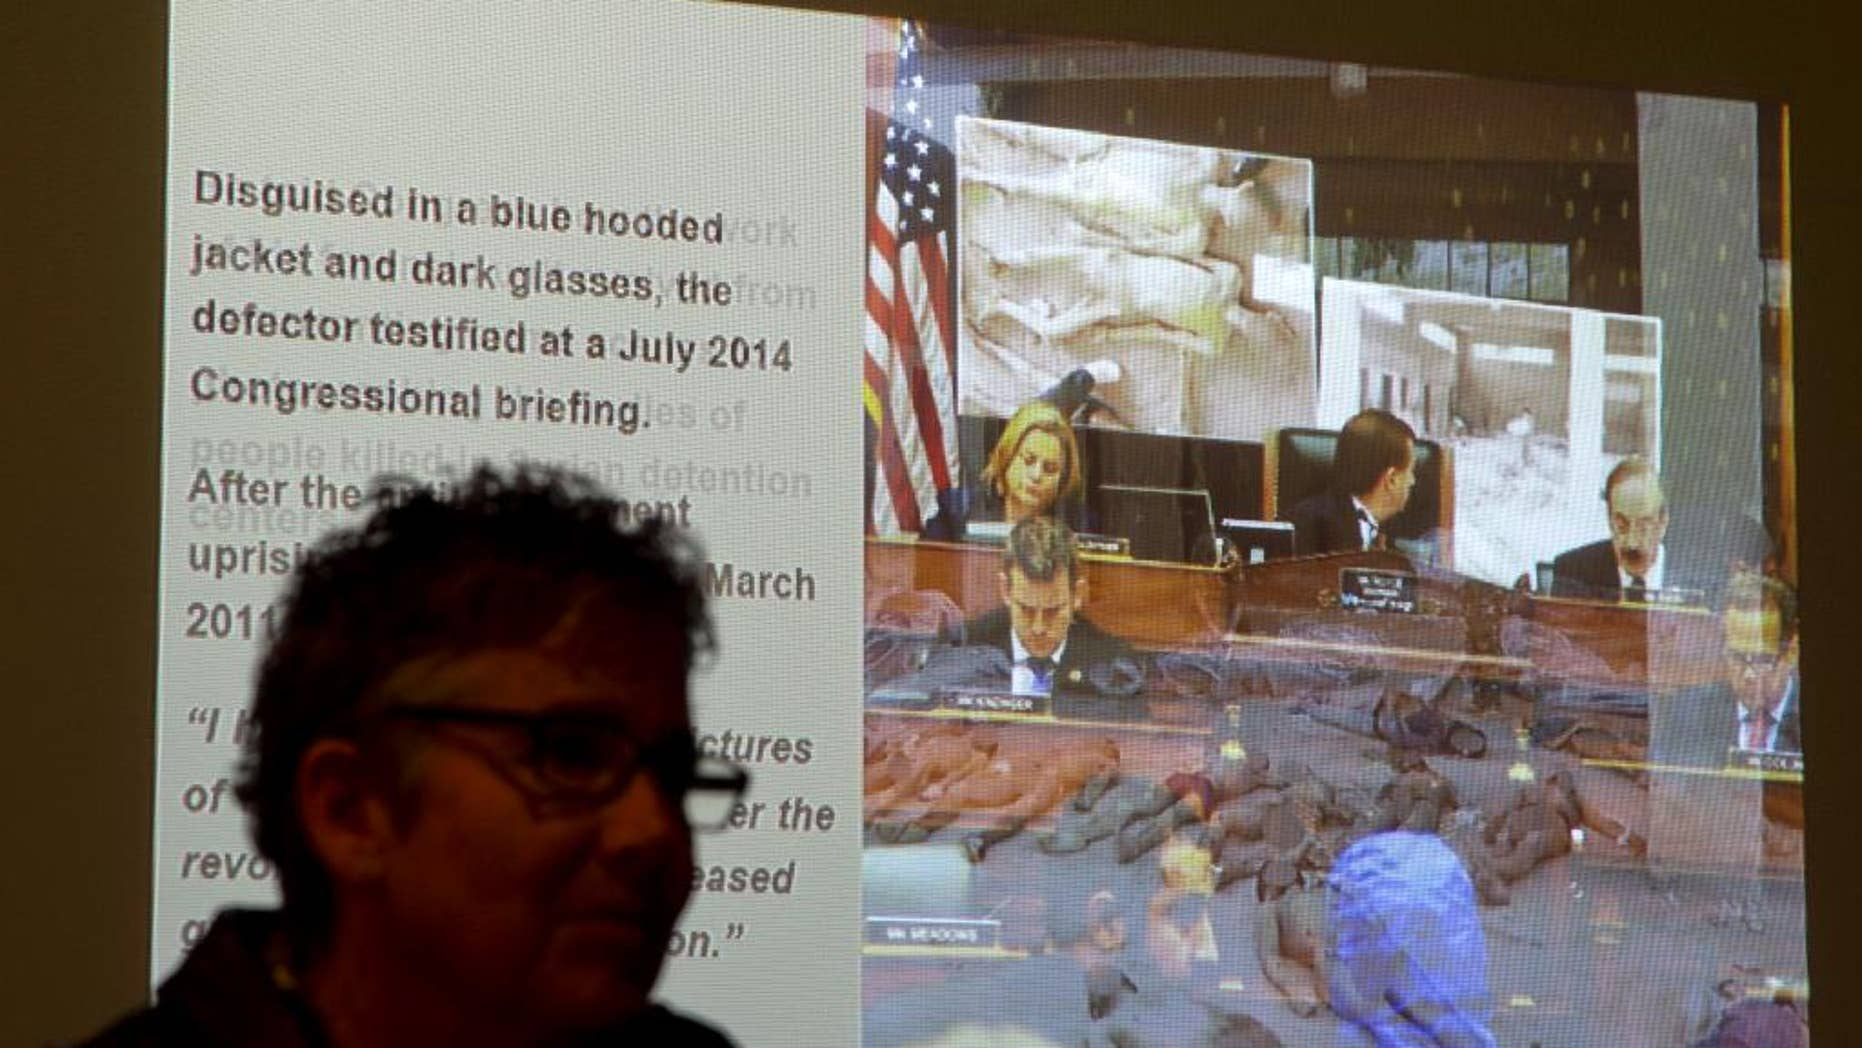 """FILE - In this Oct. 15, 2014, file photo, US Holocaust Memorial Museum visitor Marianne Kast, from Fresno, Calif., watches a slide show presentation of images of emaciated and mangled bodies from recent history in Syria in an exhibit entitled """"Genocide: The Threat Continues,"""" at the museum in Washington. Almost helpless in the U.N. Security Council to take strong action on Syria, the United States and other states are hoping to shame its government by sponsoring a graphic photo exhibit of detainees who've died in President Bashar Assad's prisons since the country's conflict began. Fifteen countries will join the opposition Syrian National Coalition on Tuesday, March 10, 2015, at United Nations headquarters to launch the exhibit of portraits showing signs of torture and starvation and to call for an end to the crisis that enters its fifth year this month. (AP Photo/Manuel Balce Ceneta, File)"""